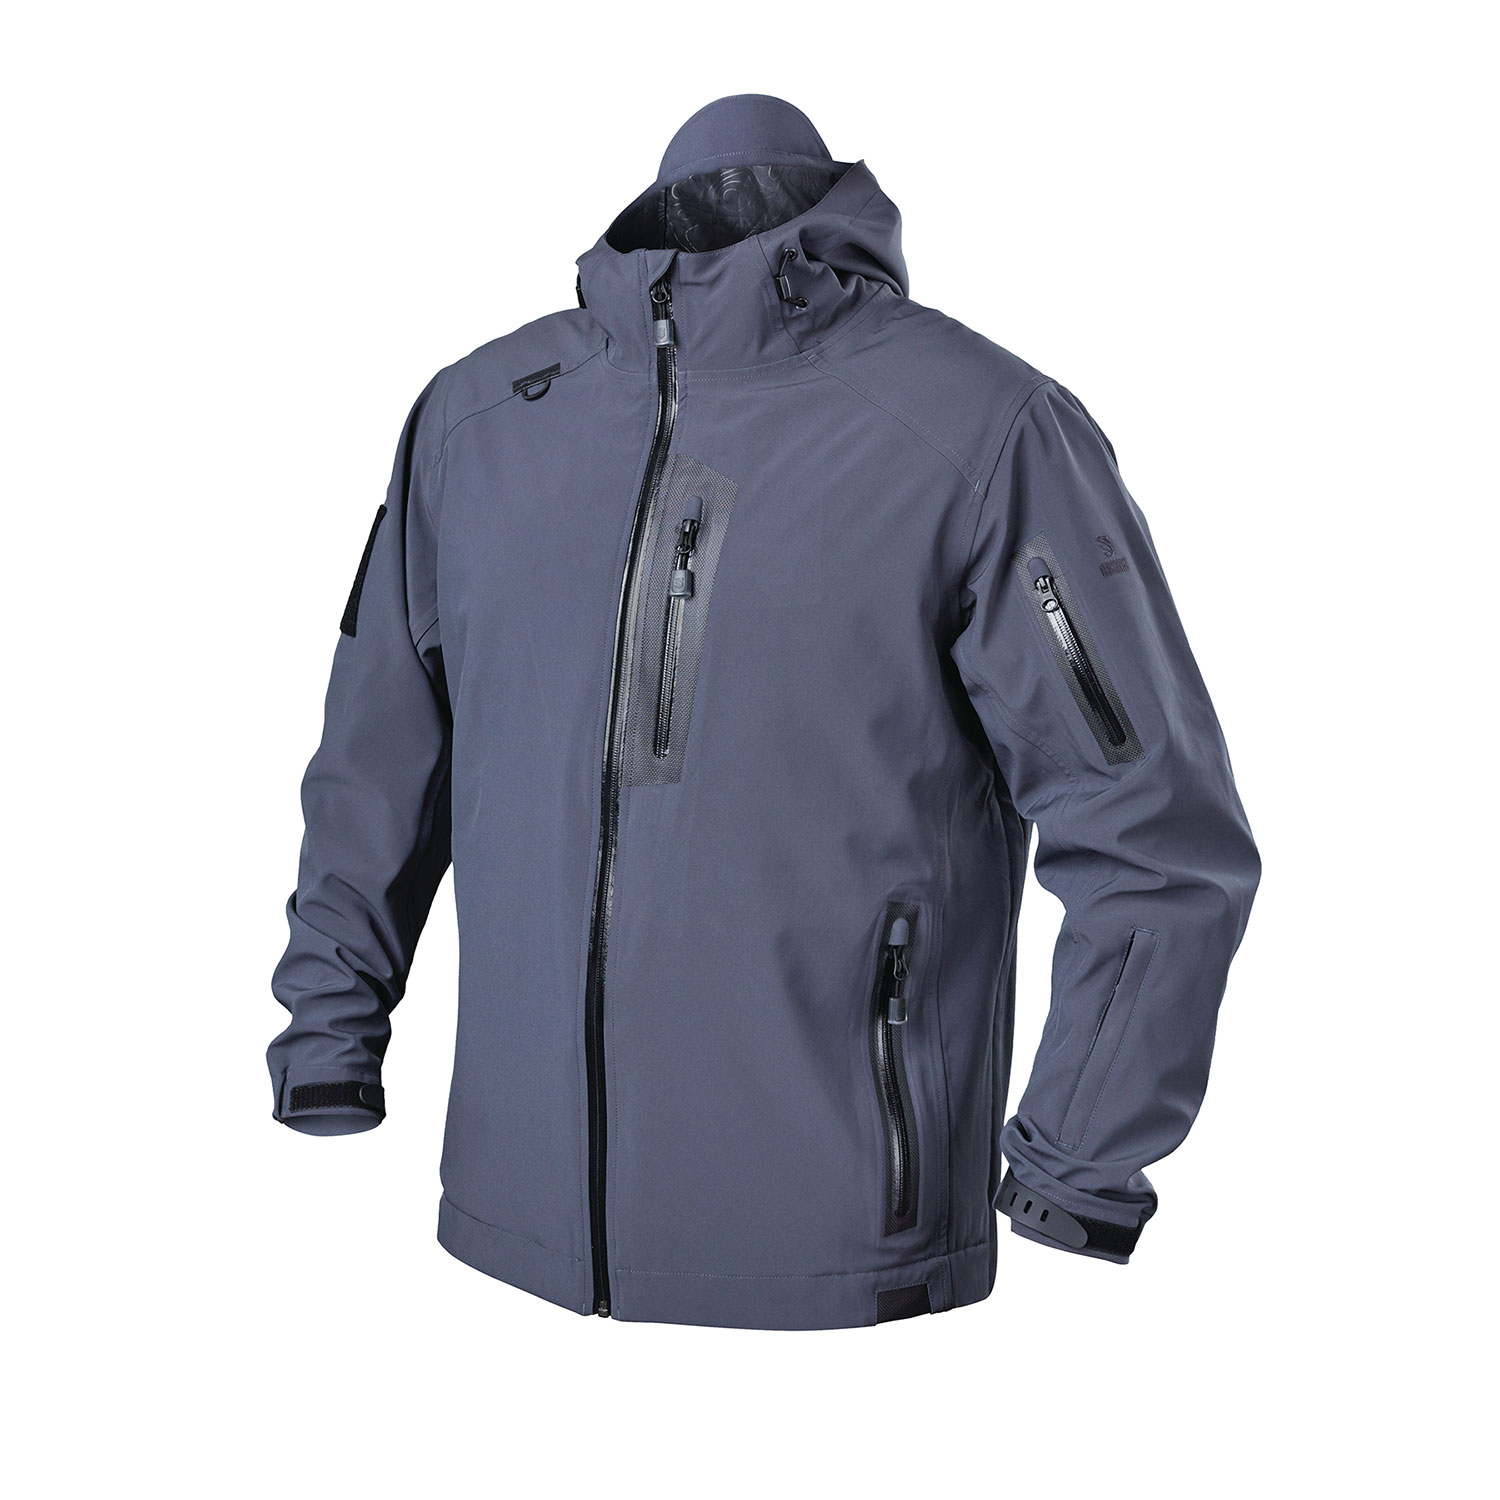 BLACKHAWK! Tactical Softshell Jacket